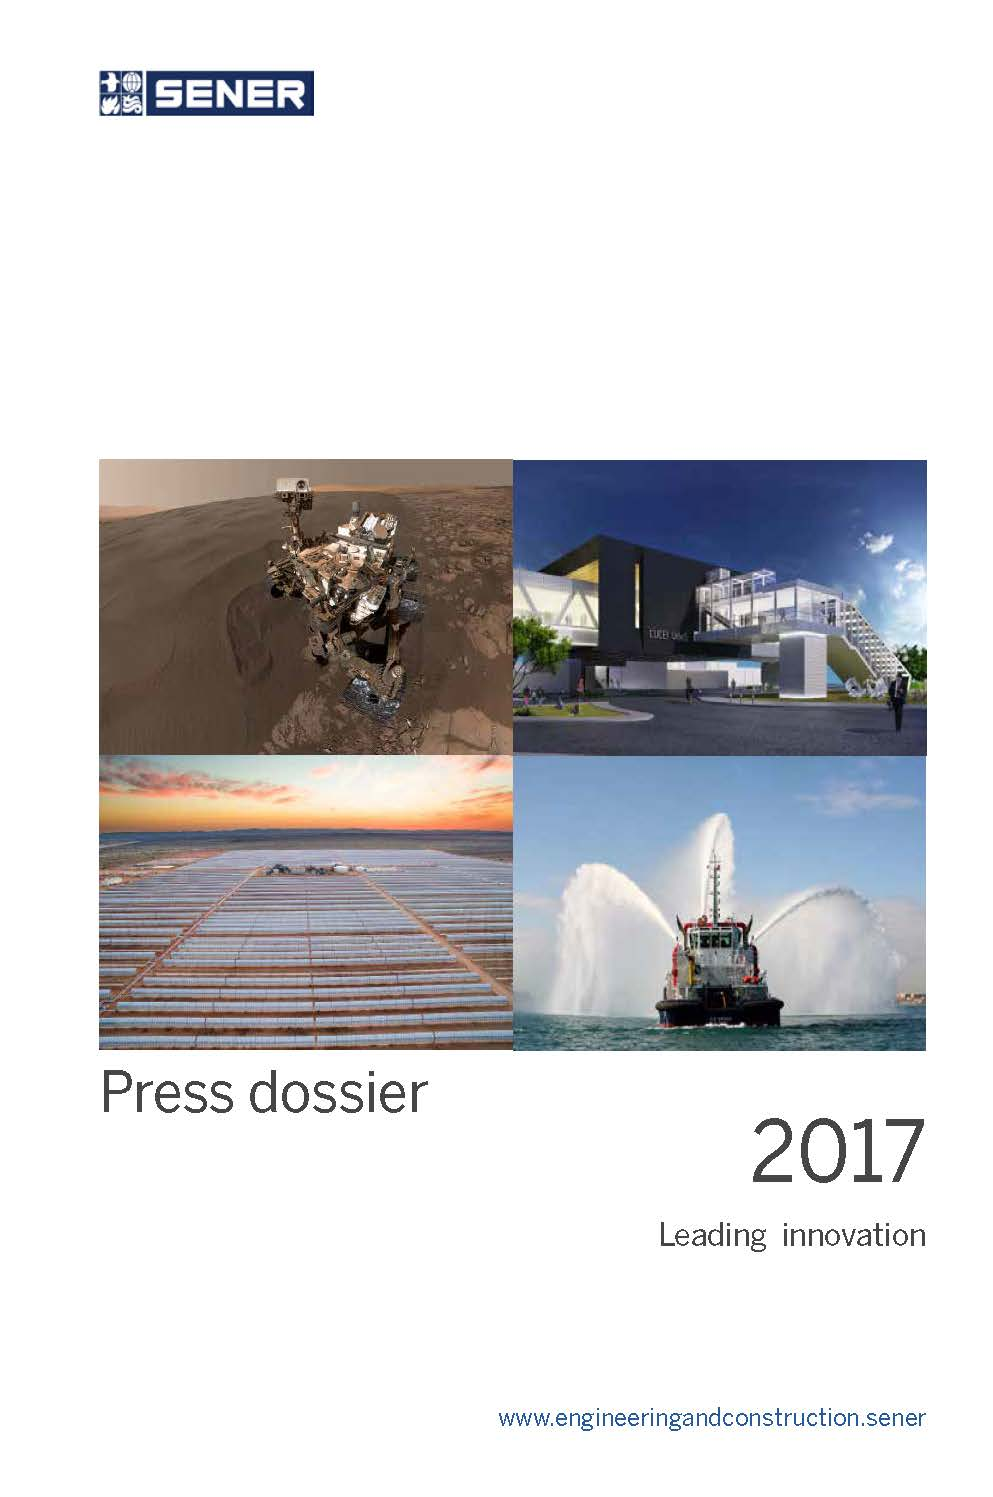 50 years in Space press dossier